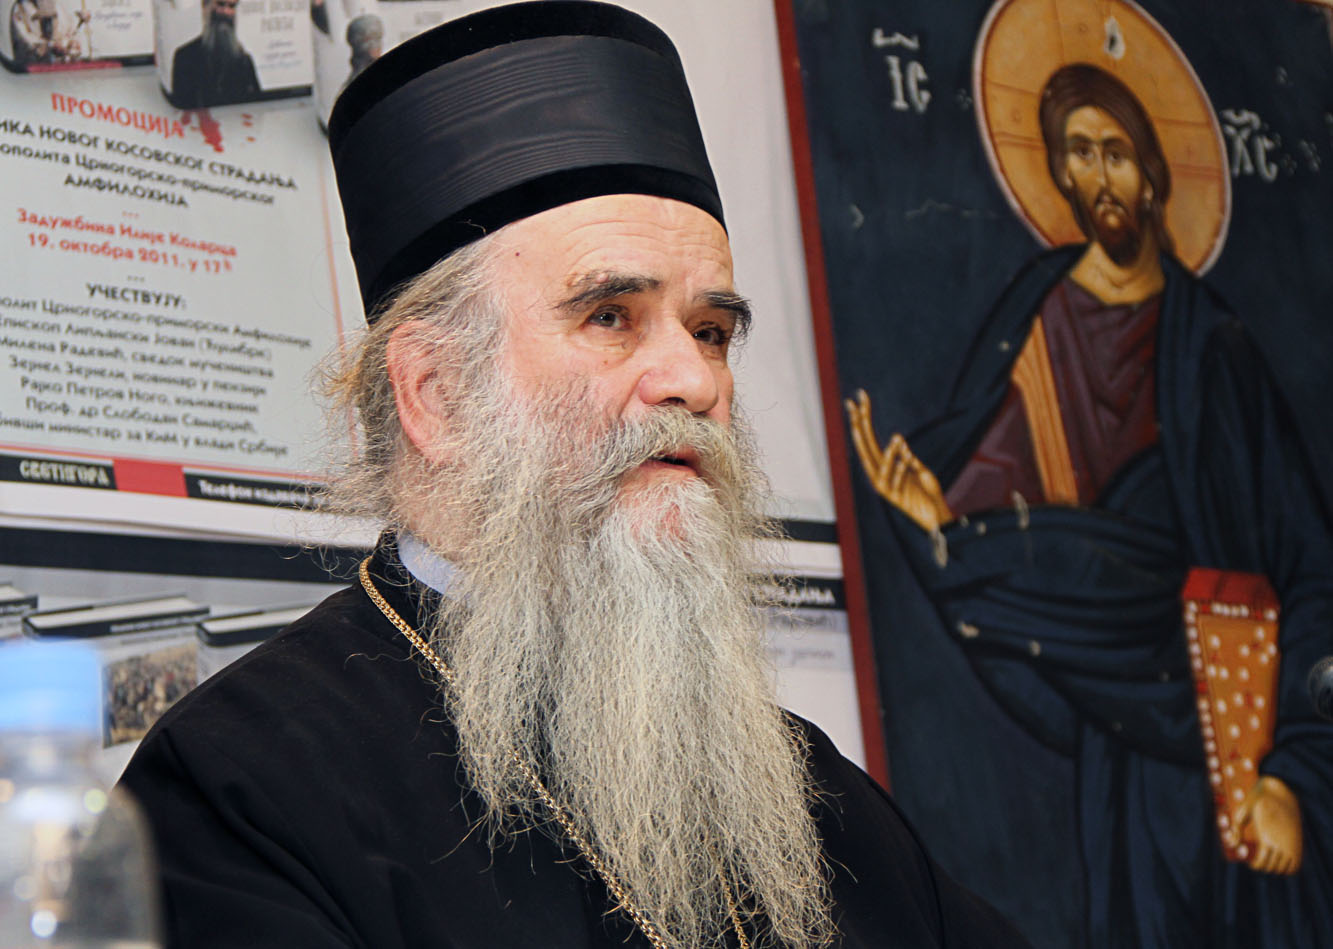 Vucic and his associates at odds with Orthodox bishop